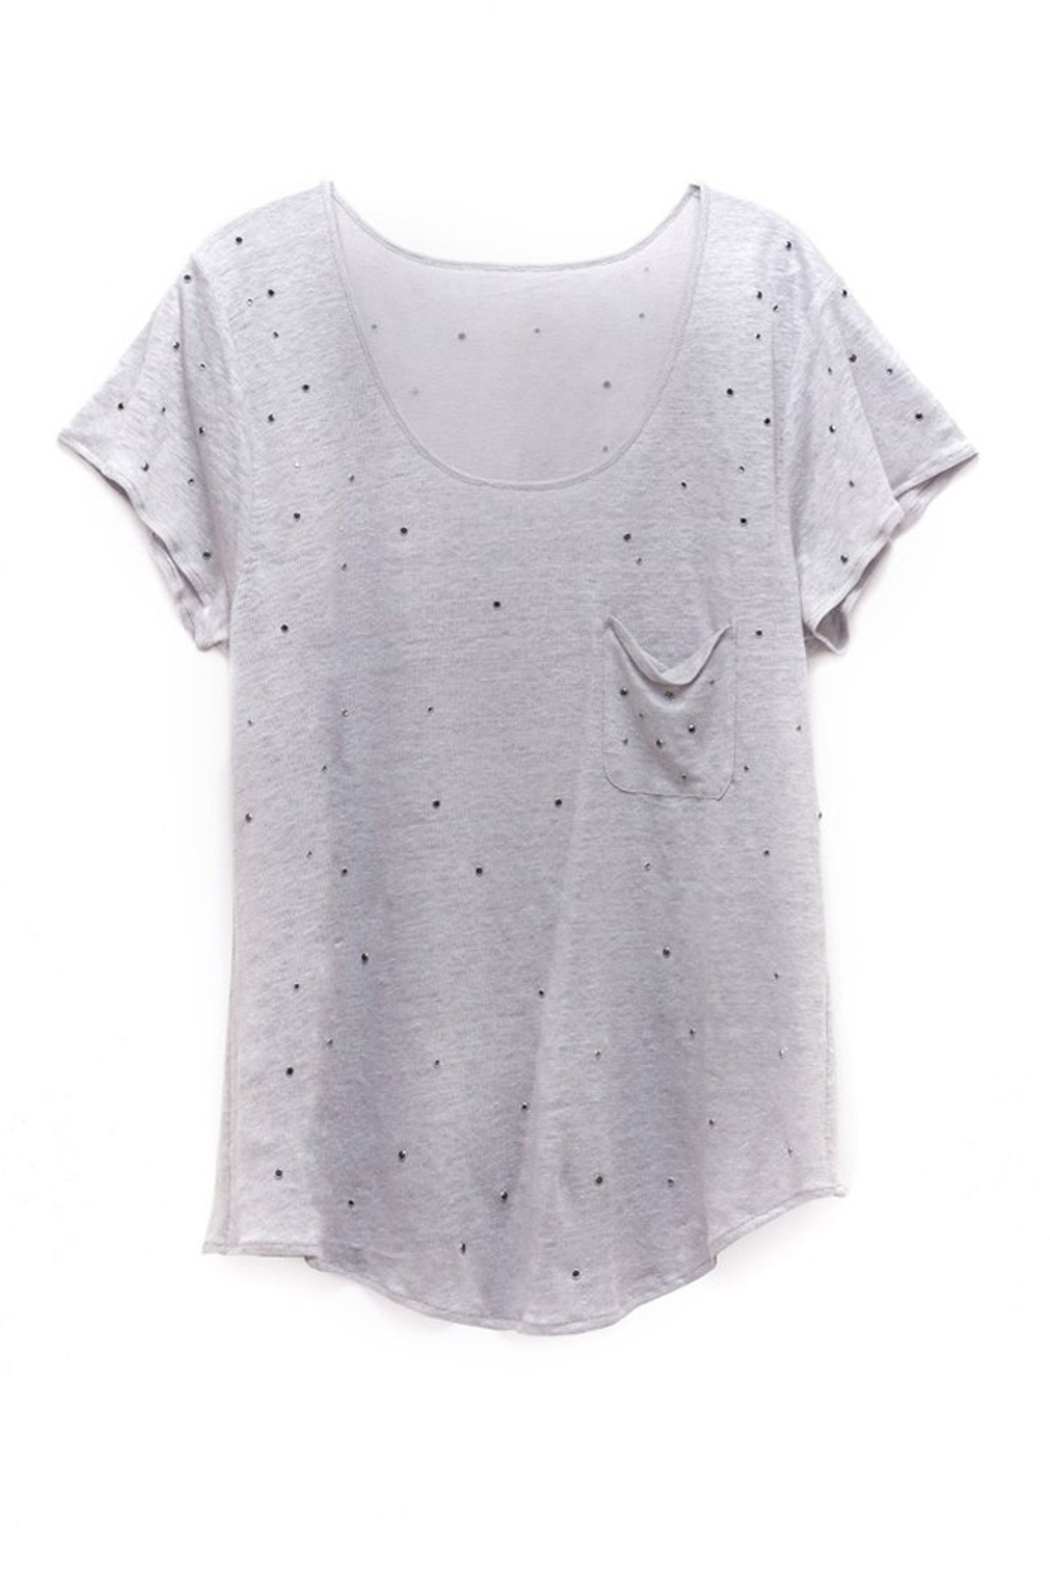 AS by DF TWINKLE STUDDED TEE - Front Full Image